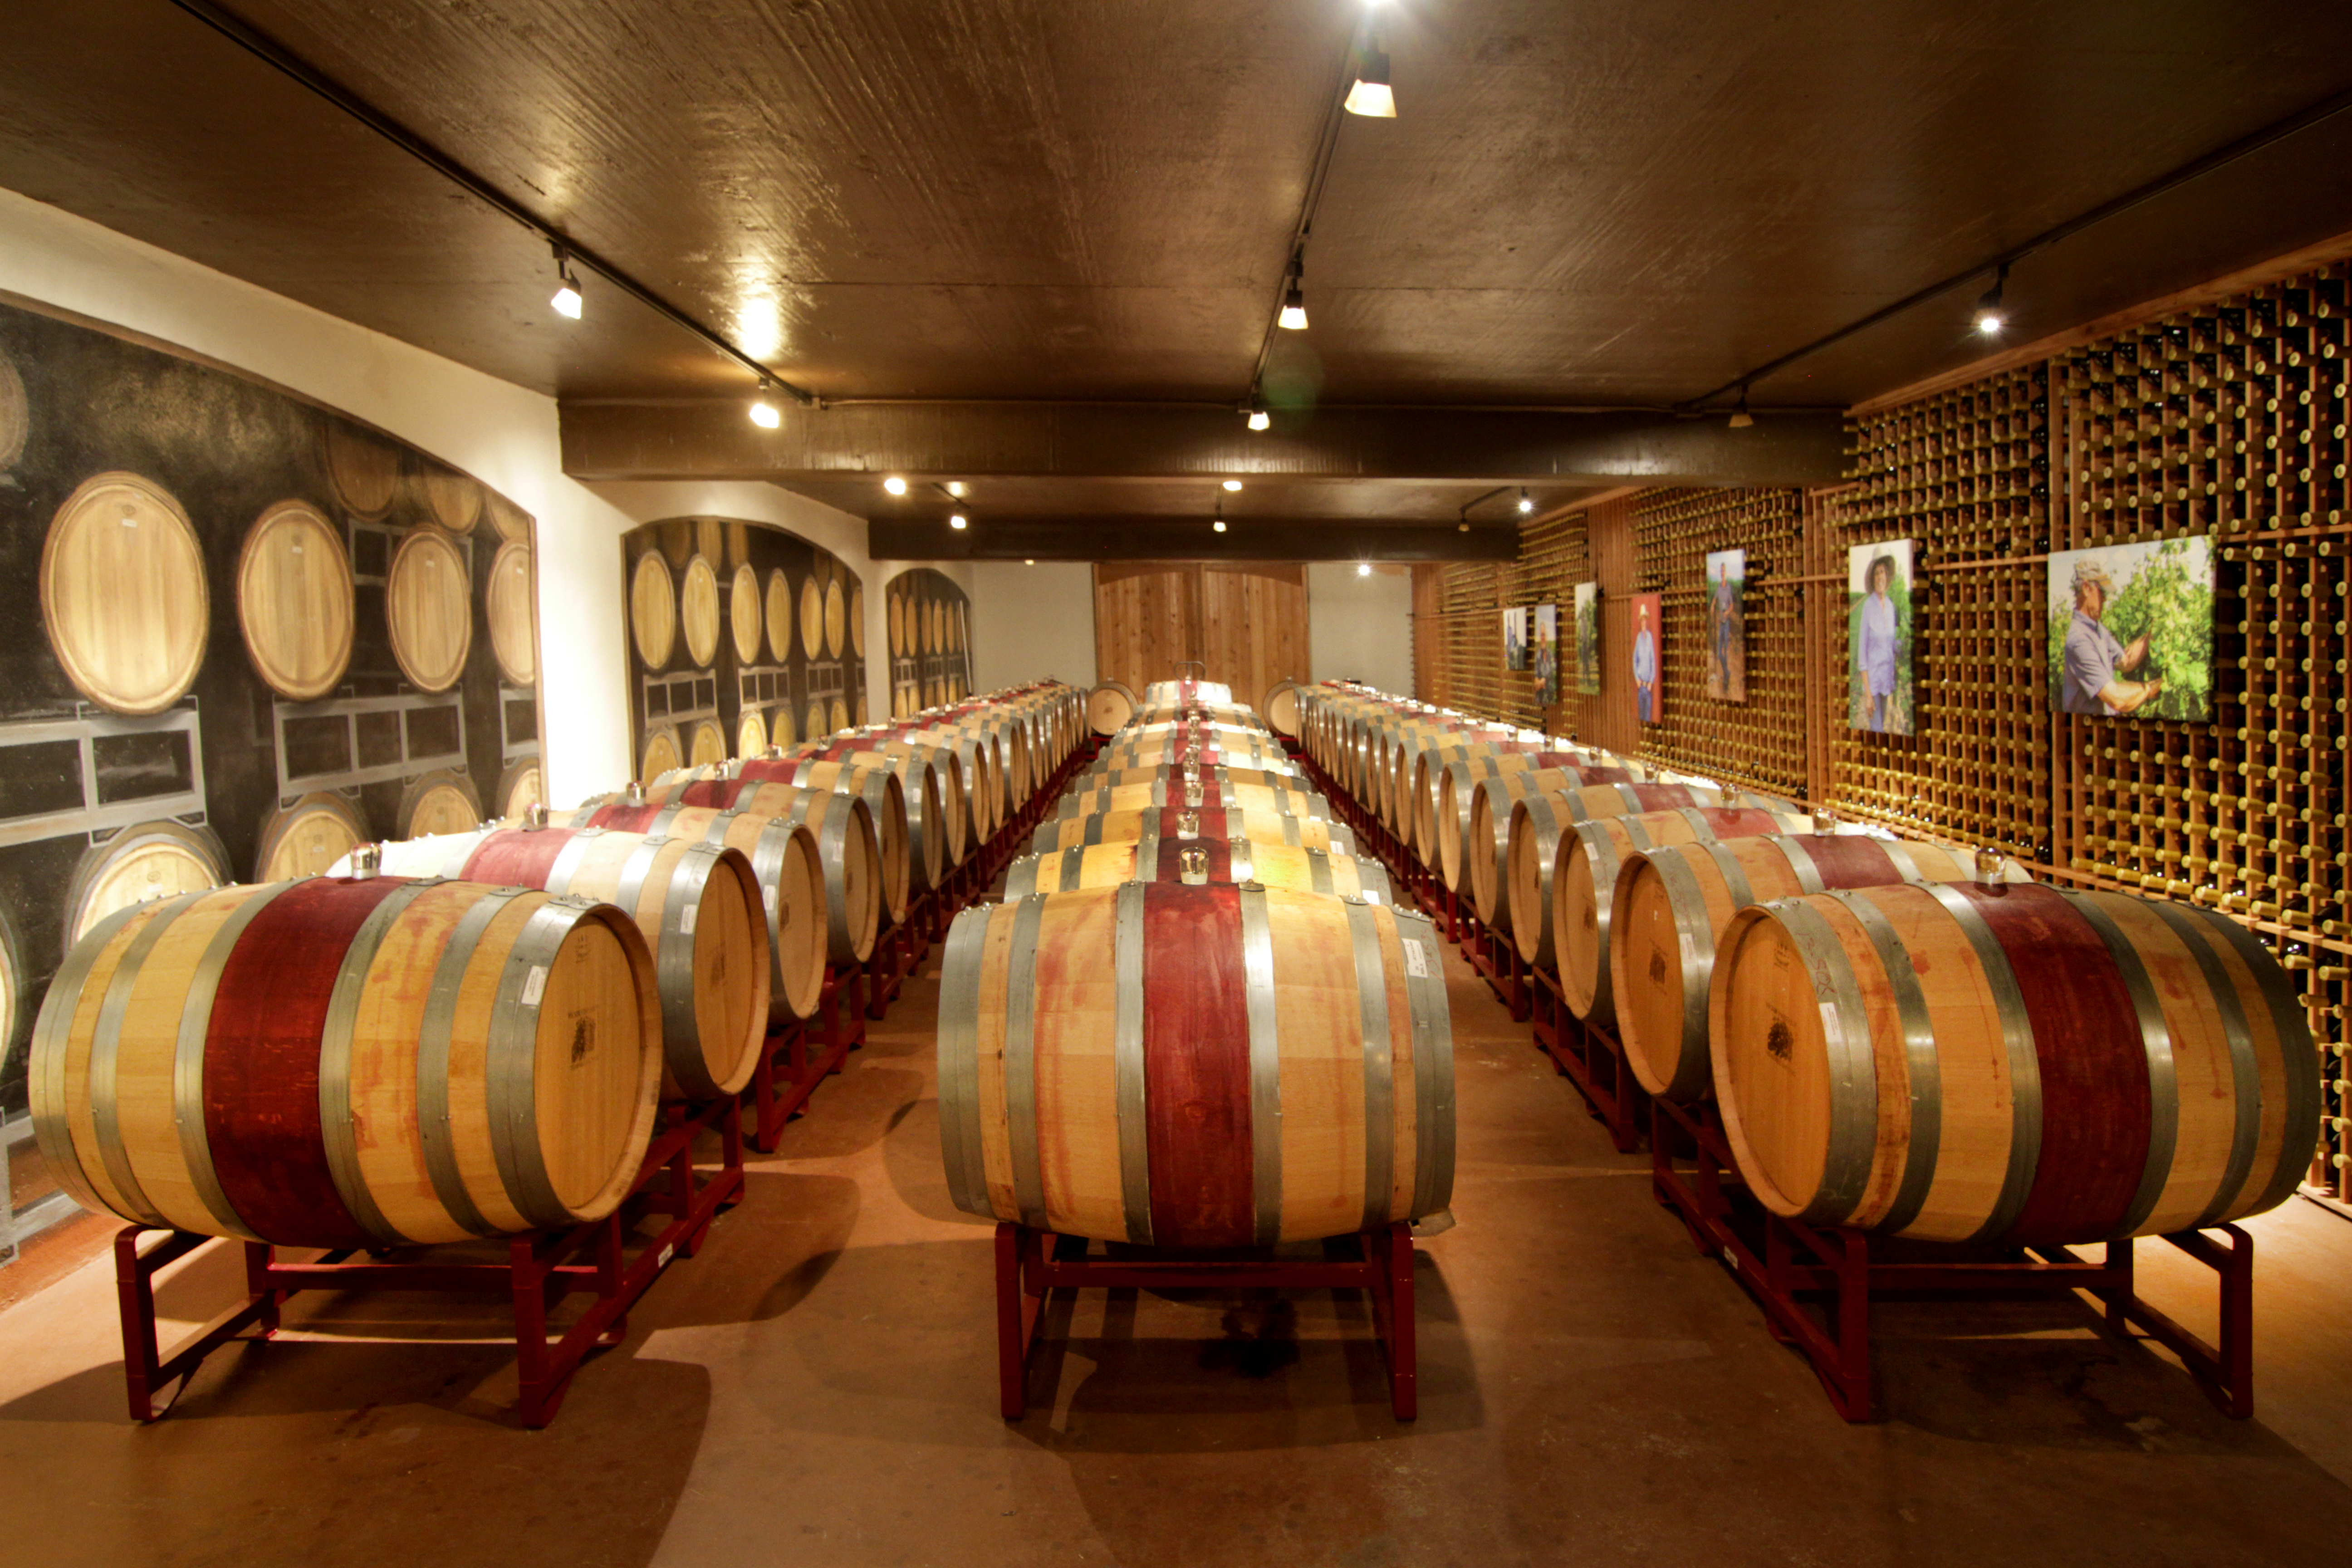 The Archive Contains Photos Of Texas Vineyards Wineries